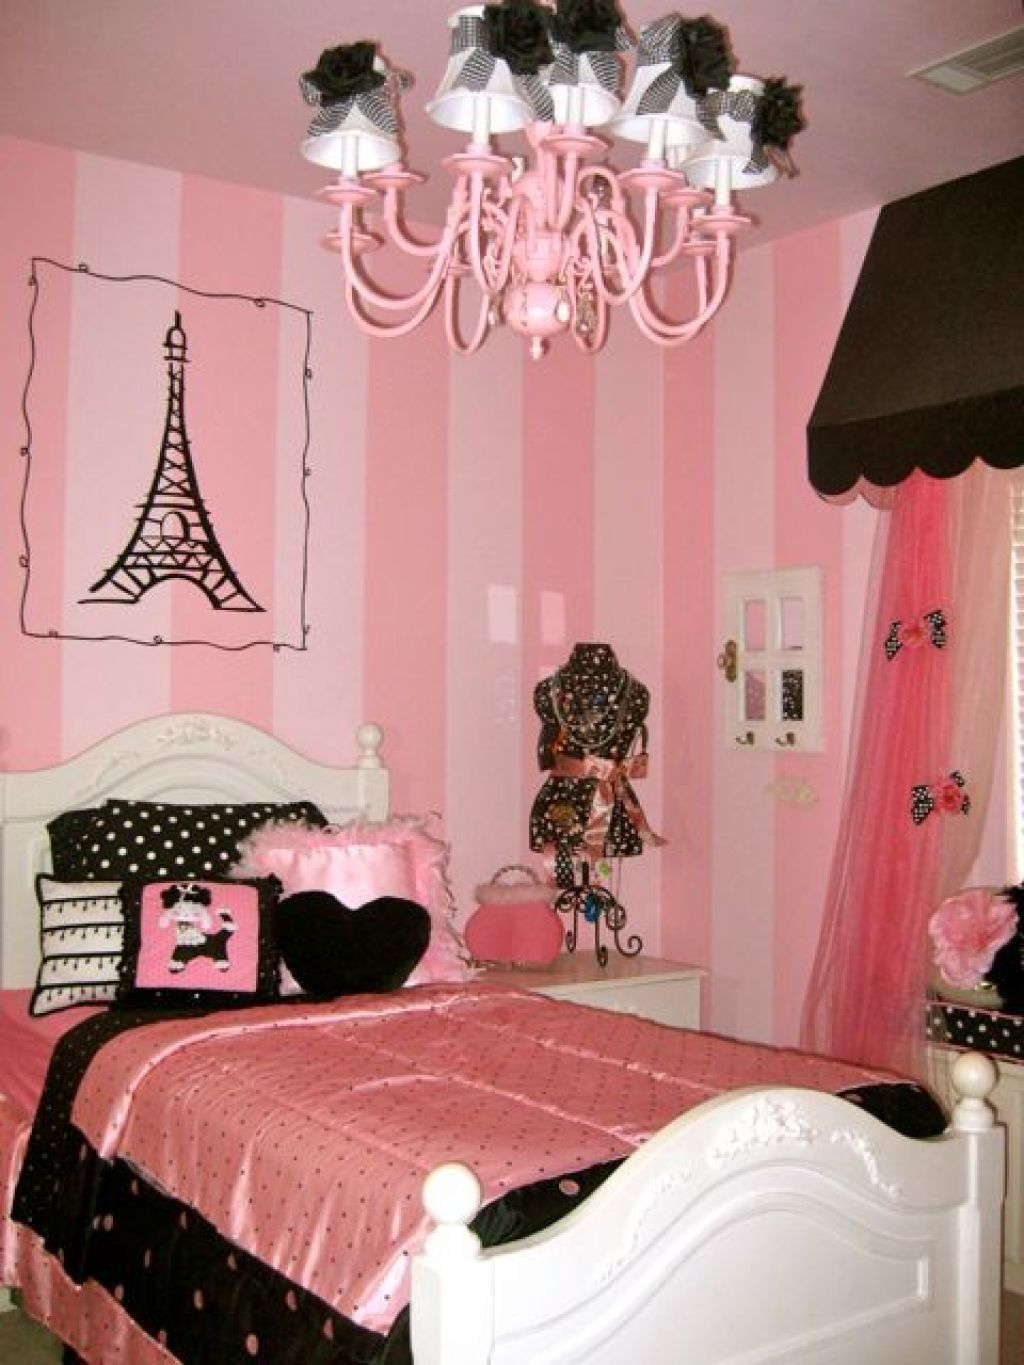 paris themed bedroom for girls room | bedroom decorating ideas